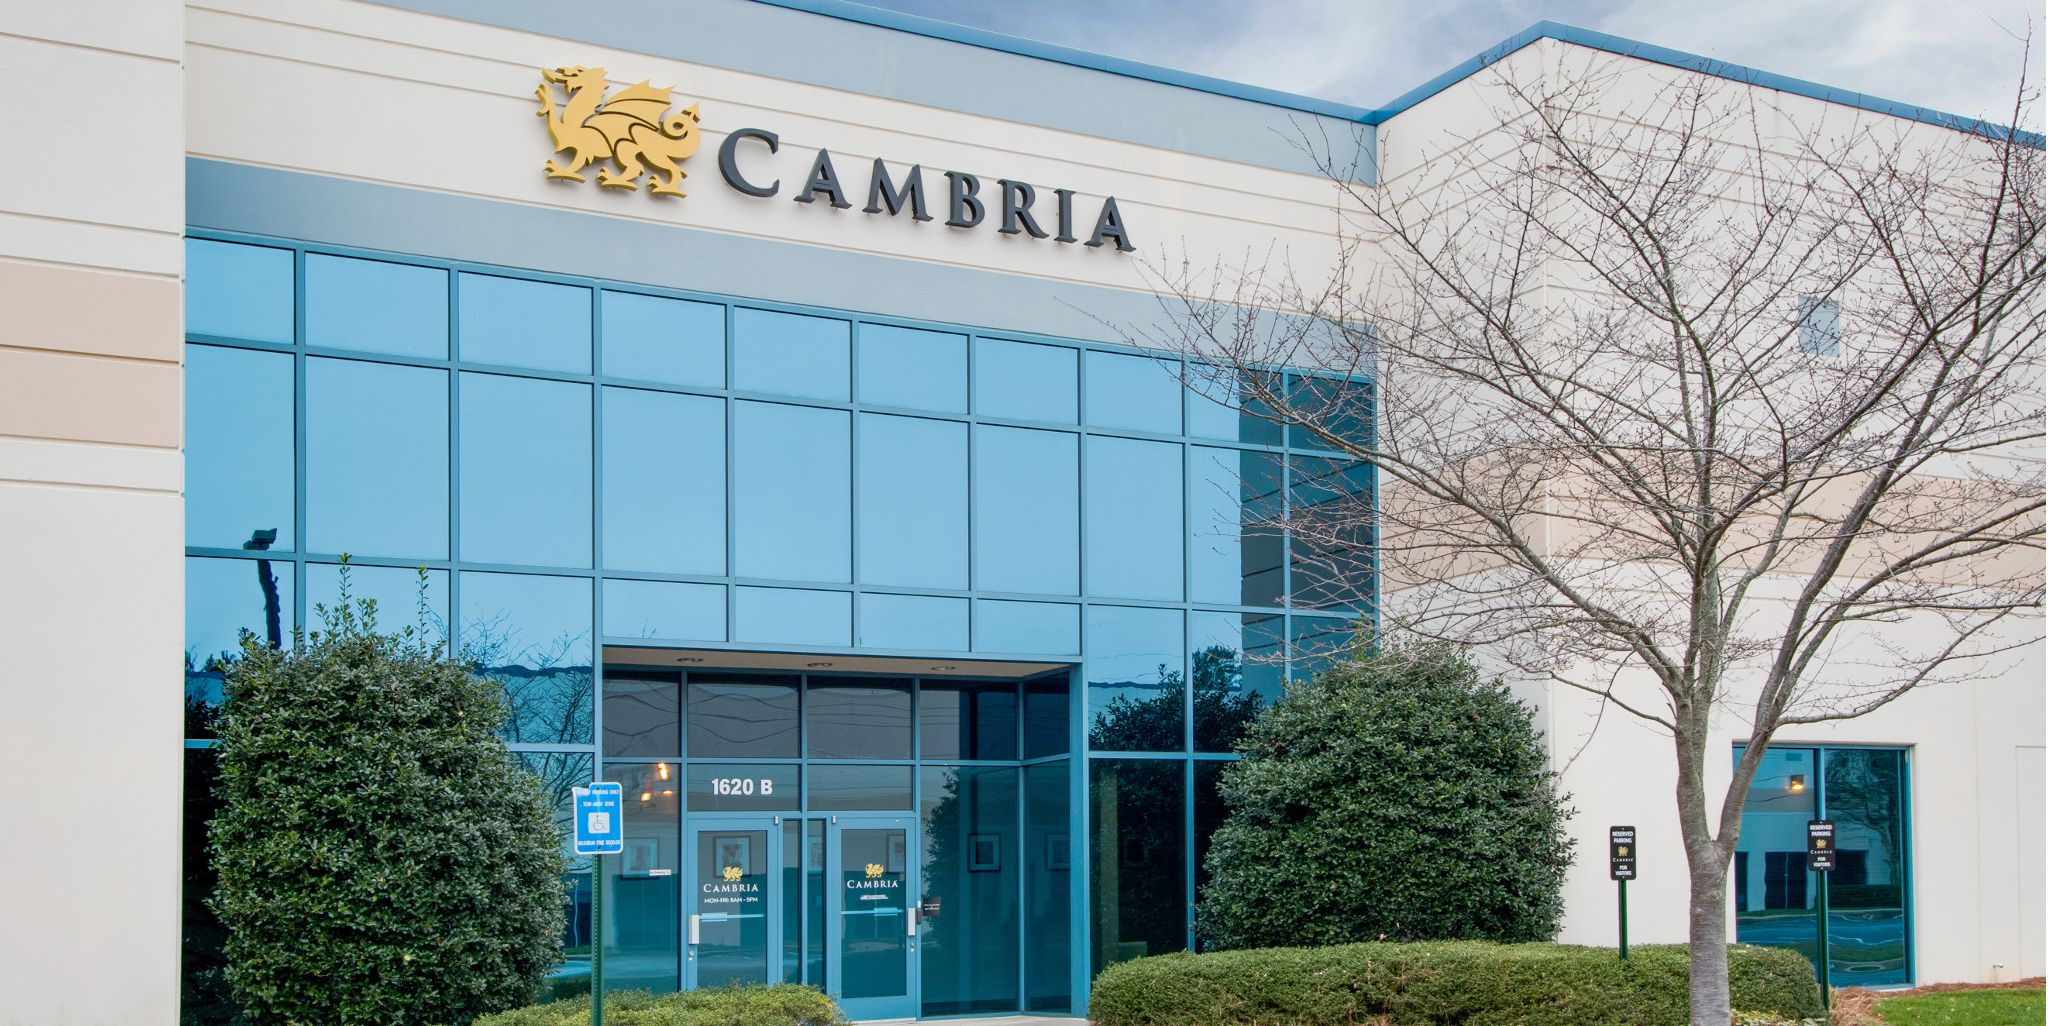 Cambria-Atlanta-Georgia-showroom